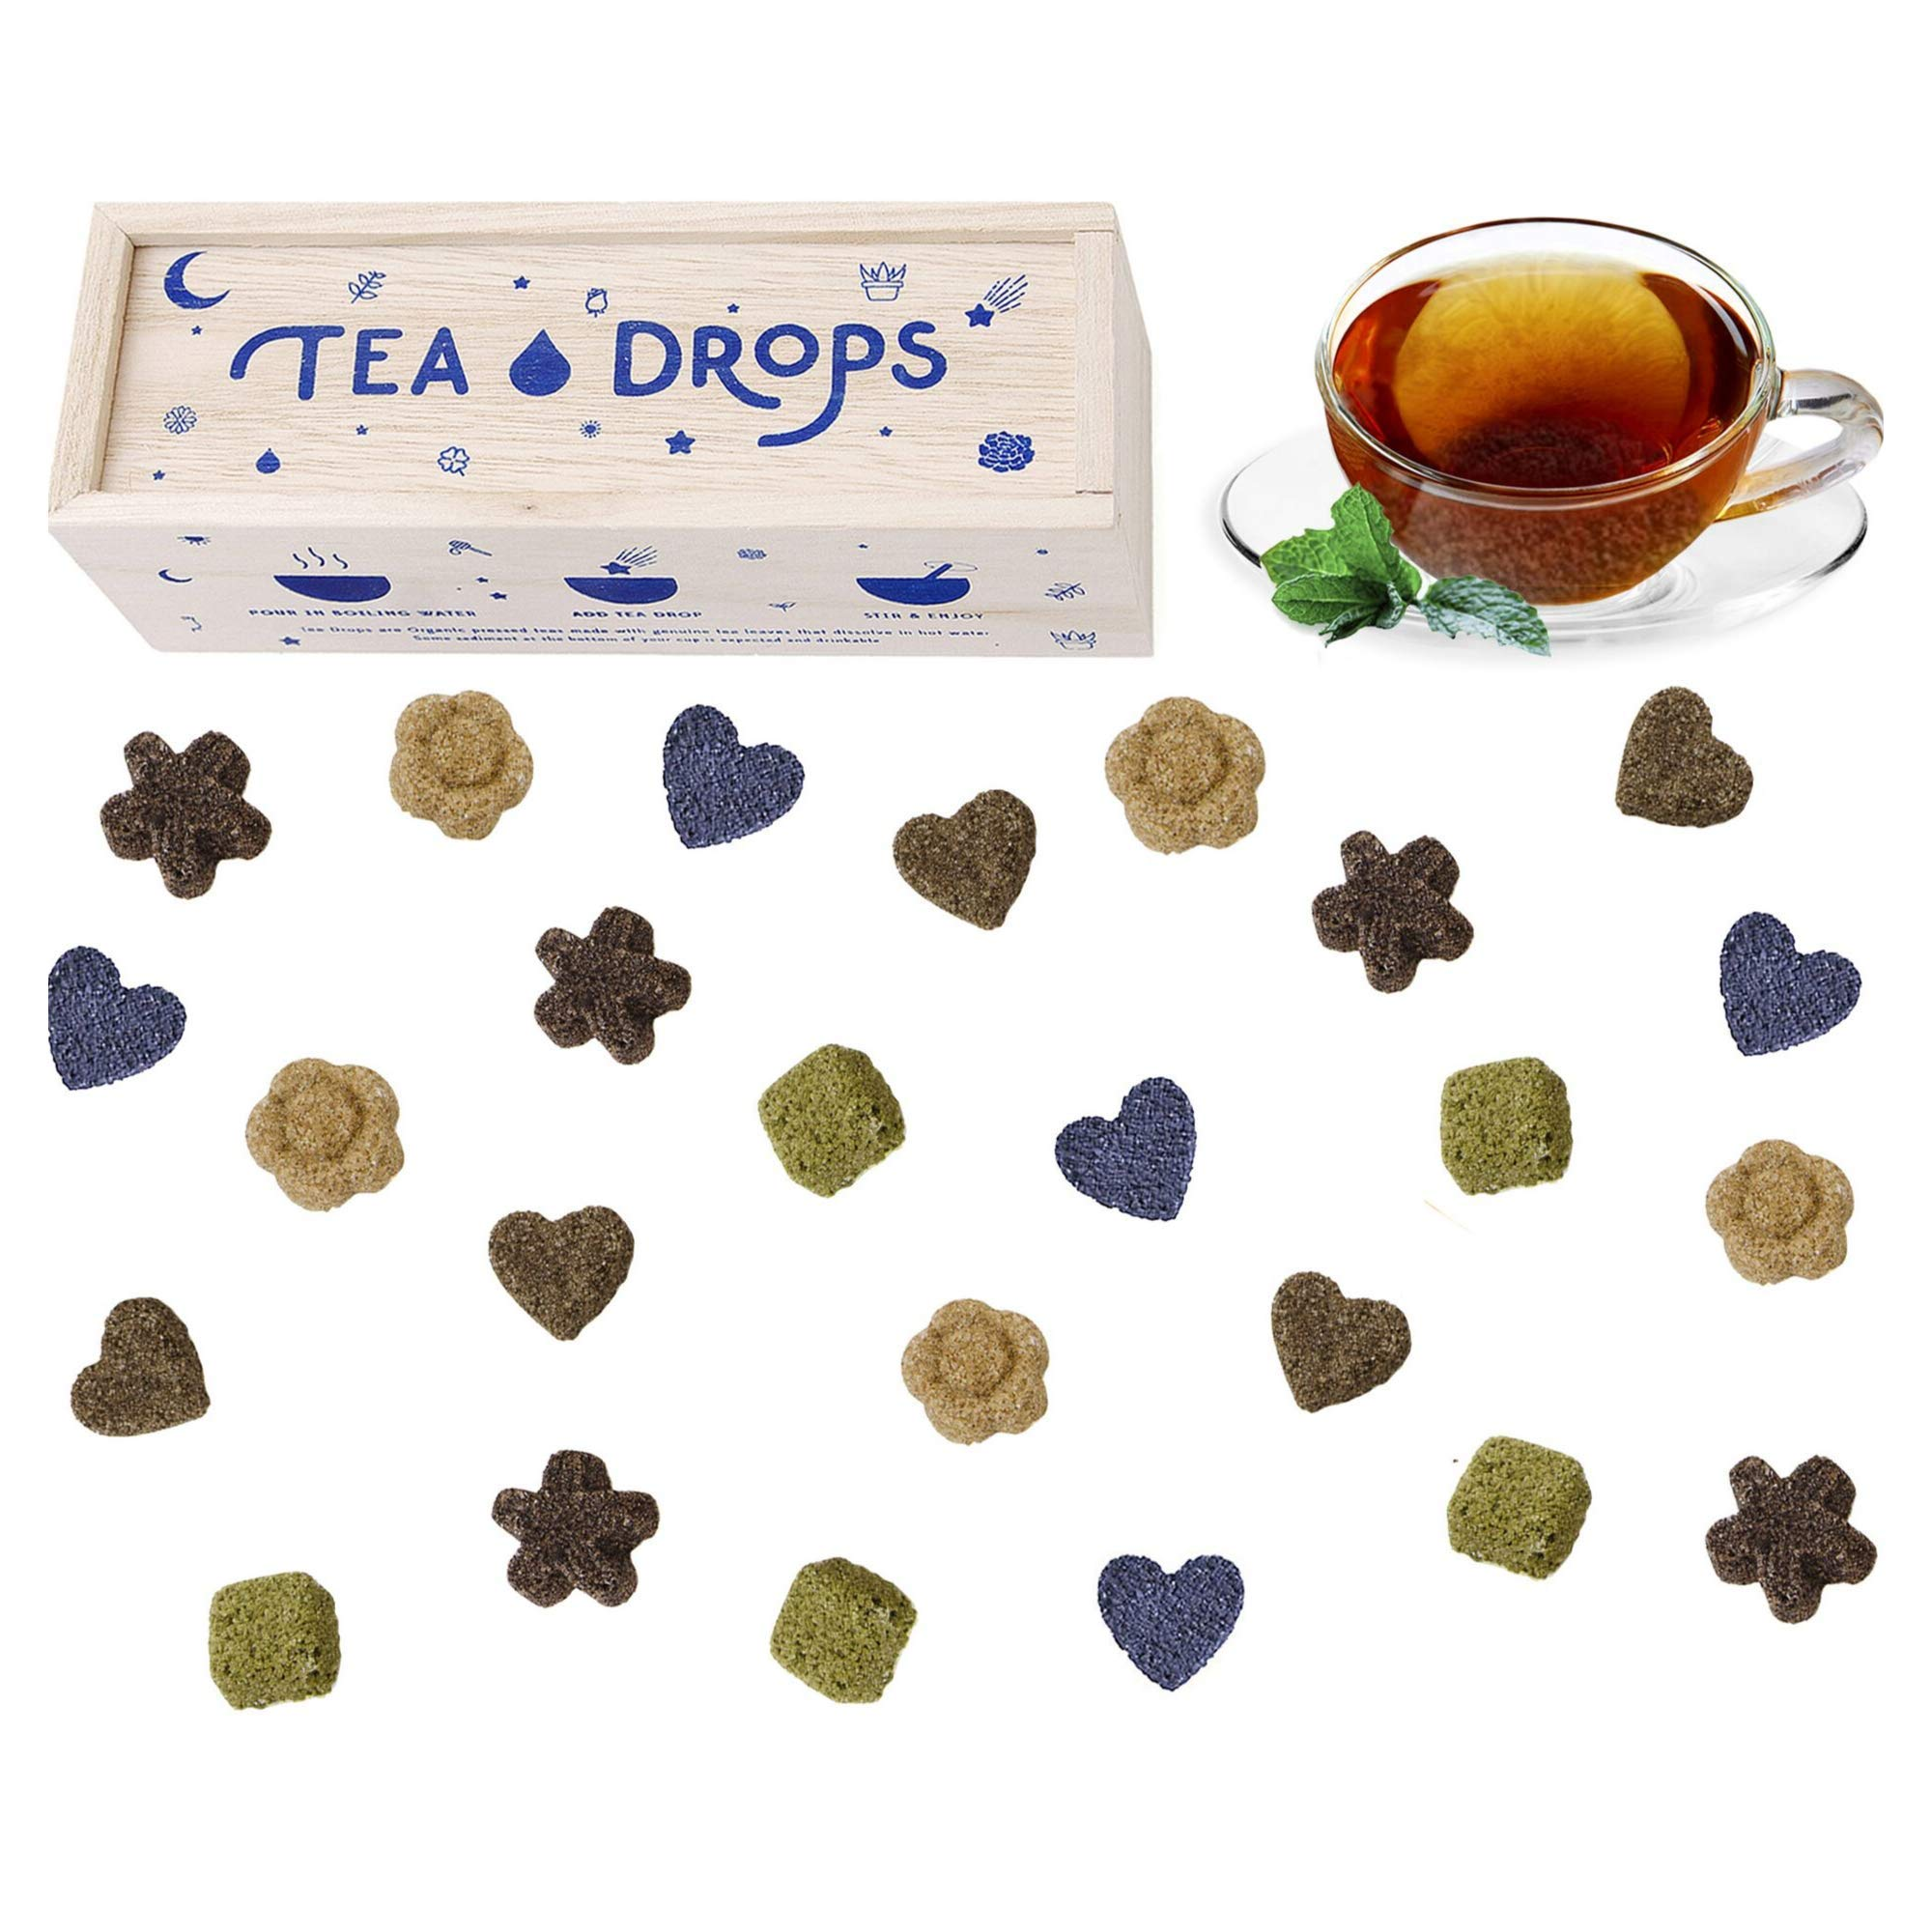 Sweetened Organic Loose Leaf Tea   Deluxe Herbal Sampler Assortment Box   Instant Pressed Teas Eliminate the Need for Teabags and Sweetener   Tea Lovers Gift   Delicious Hot or Iced   By Tea Drops